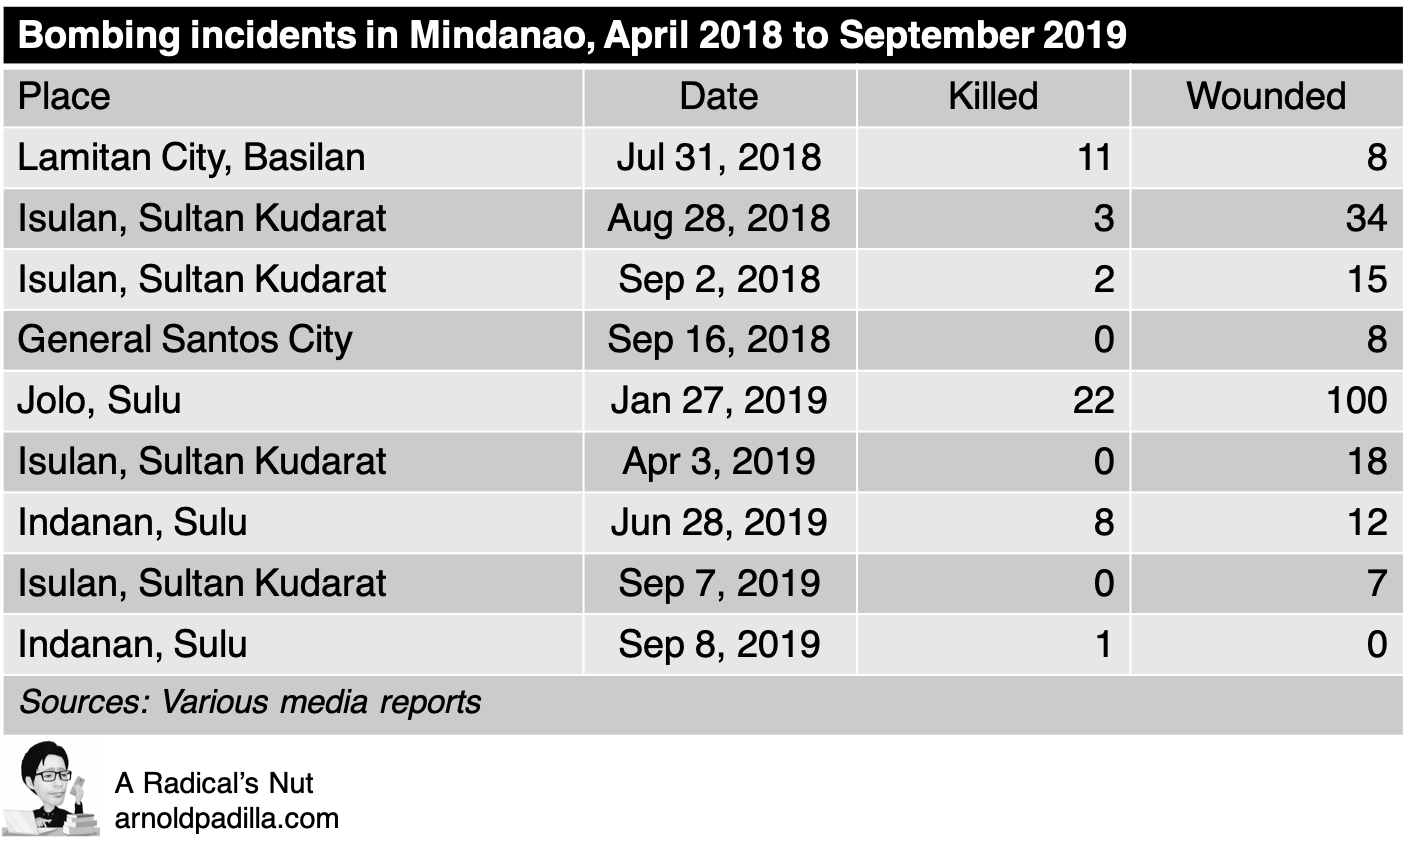 Tab 1 Mindanao bombings